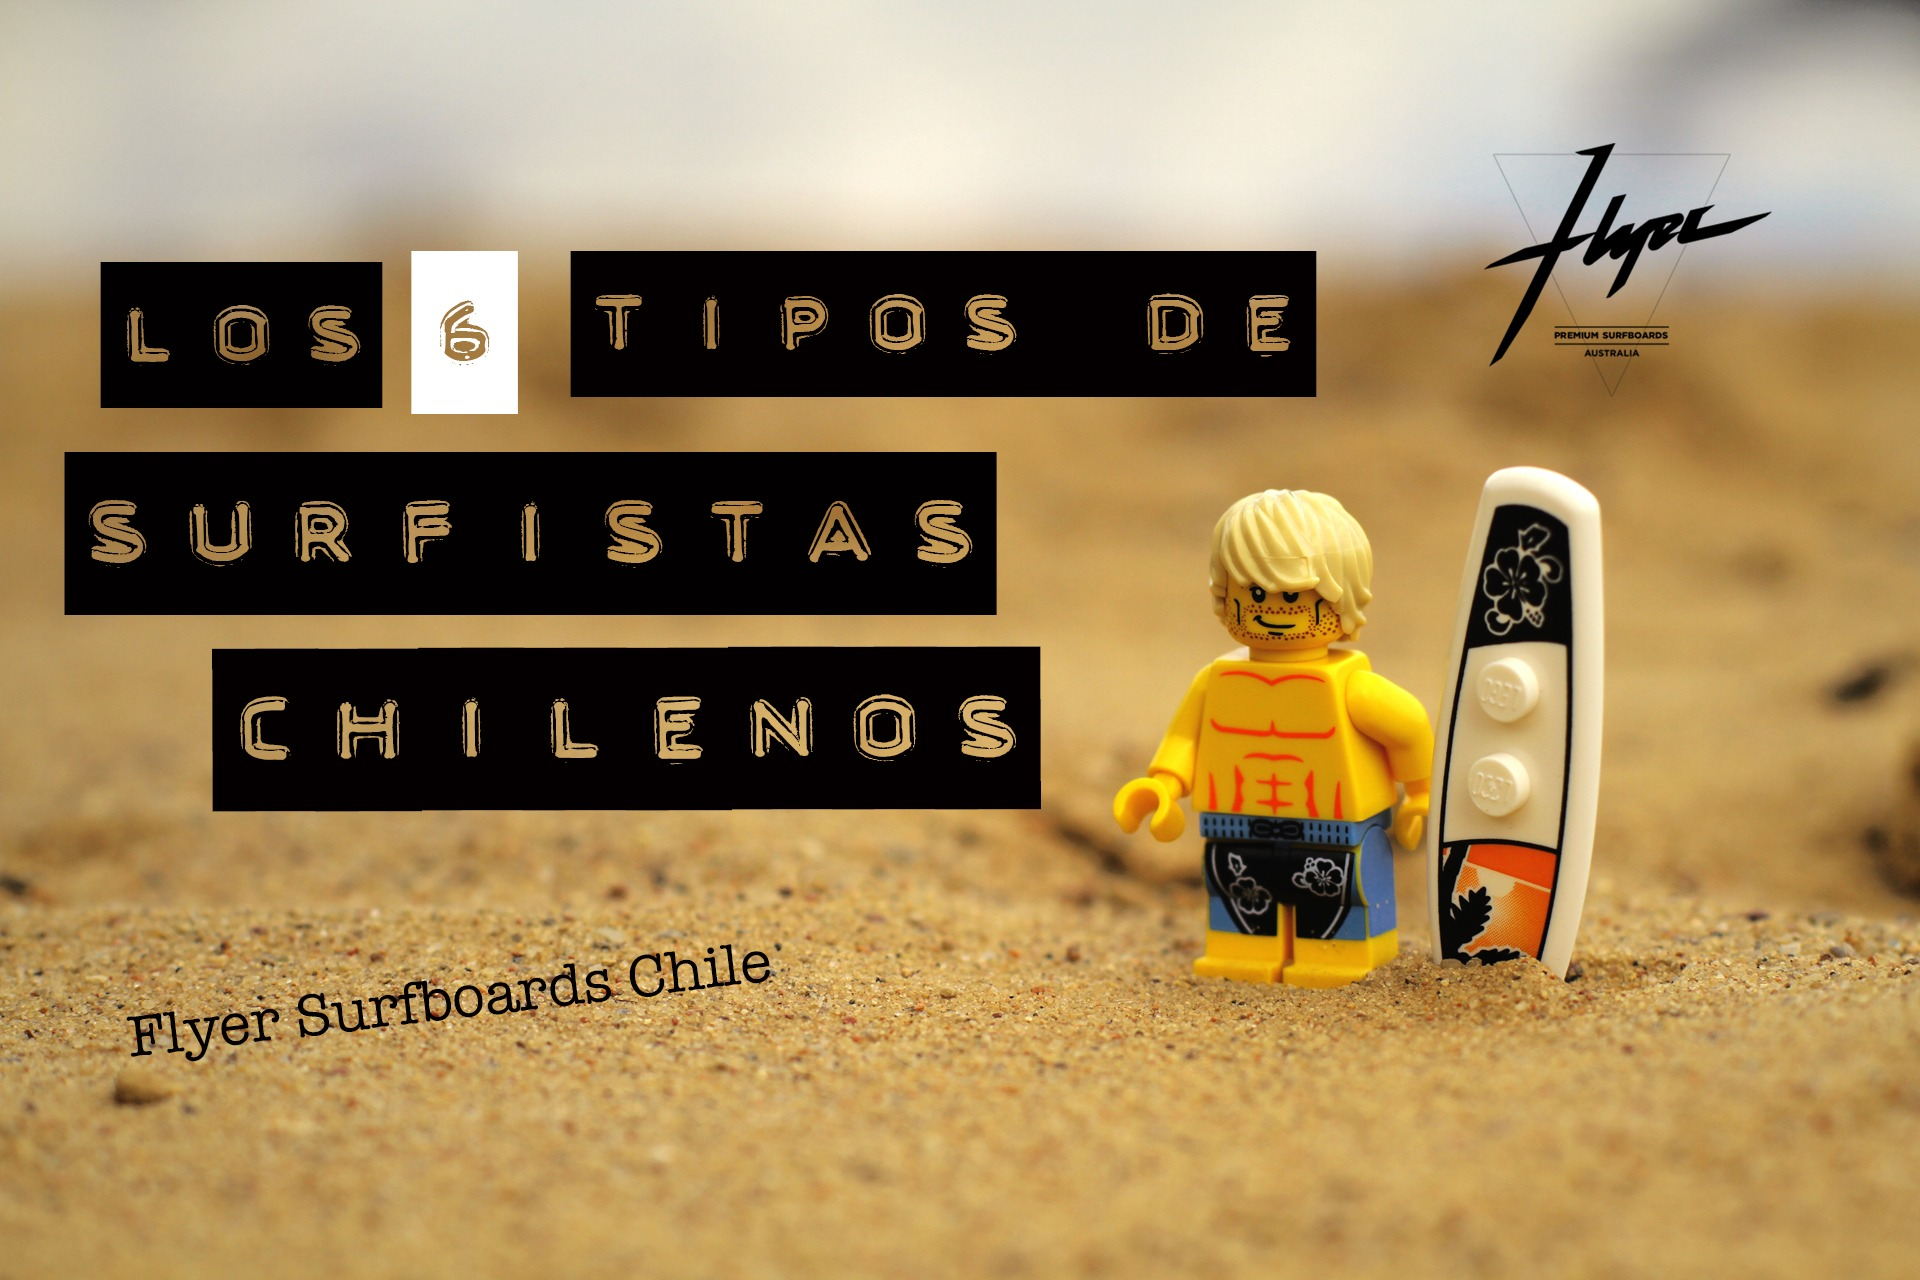 Tablas de surf en chile_Flyer Surfboards